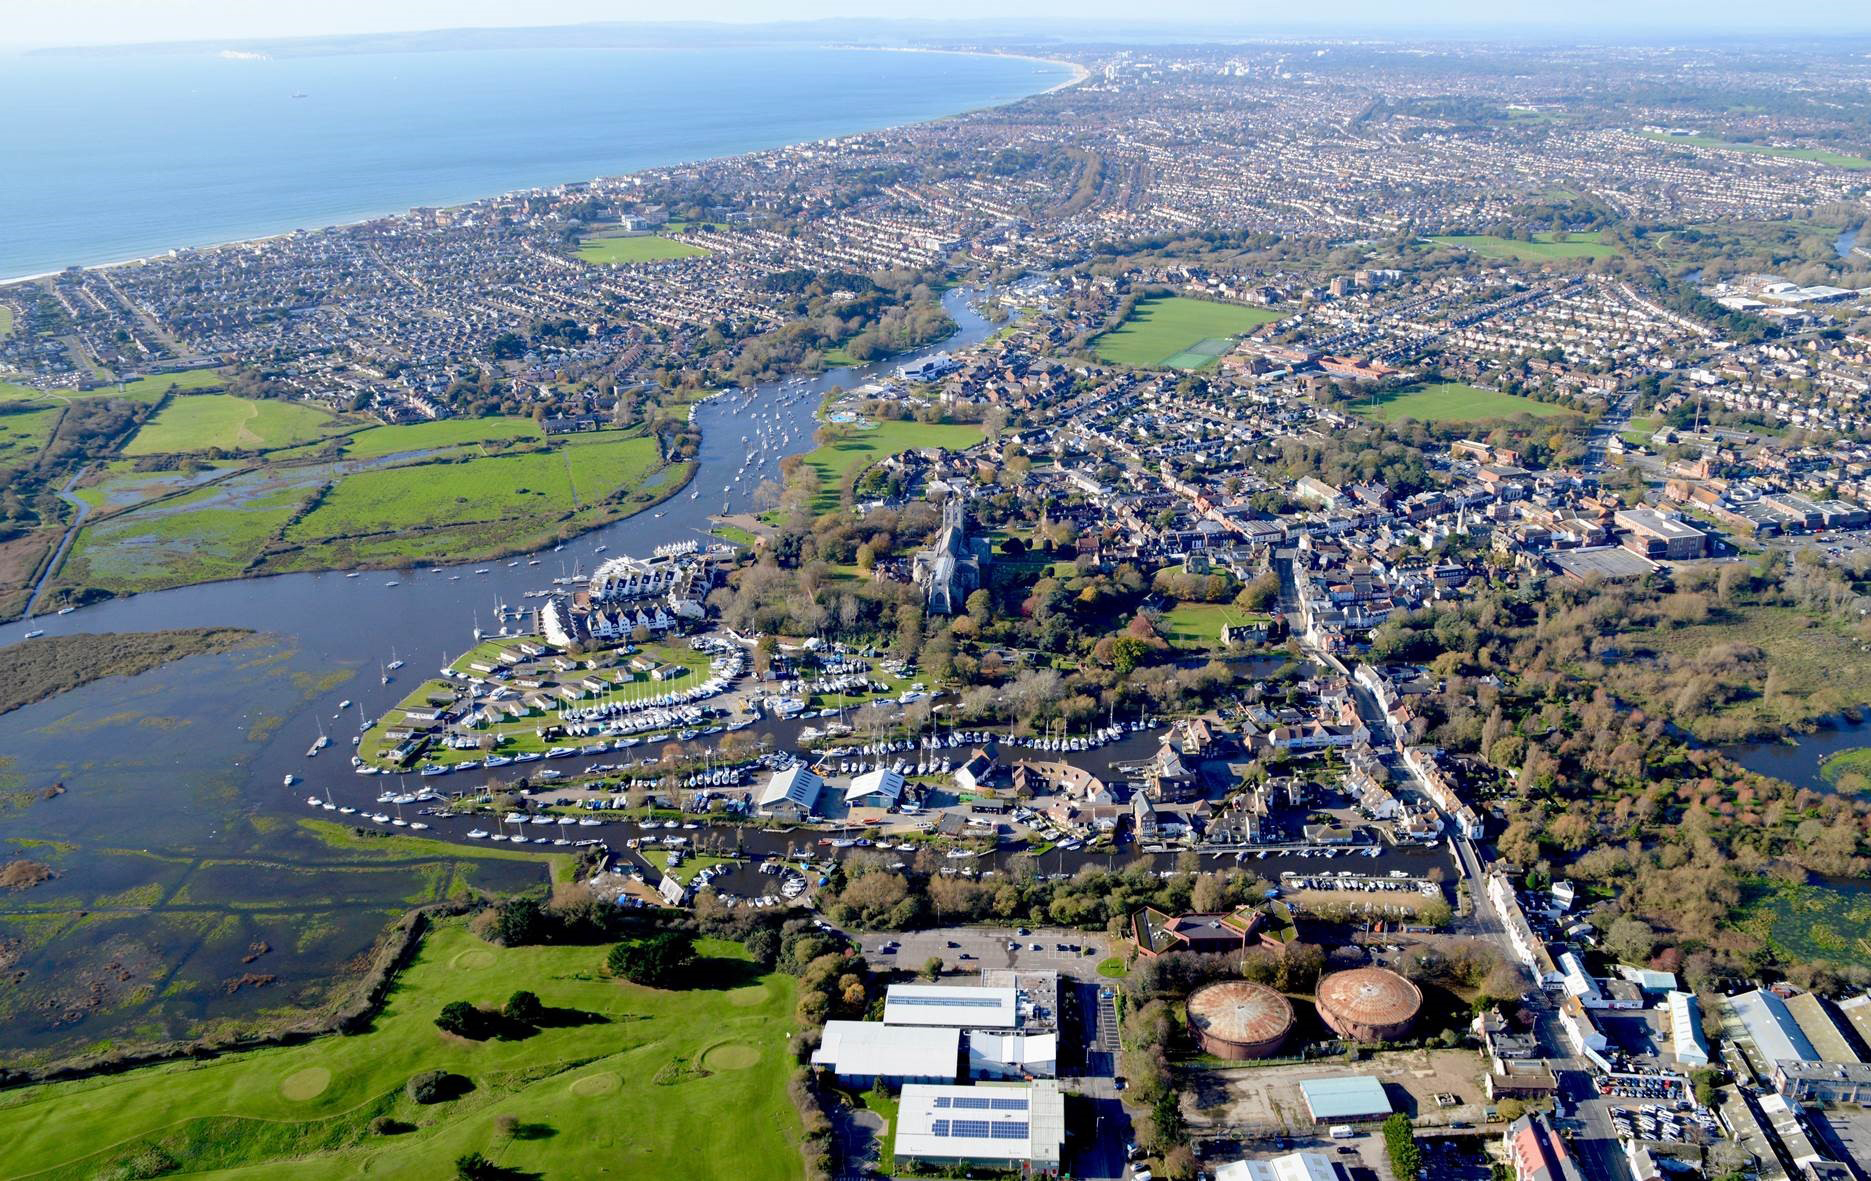 Aerial view of Christchurch merging with Bournemouth, and Poole. Photo: Stephen Bath